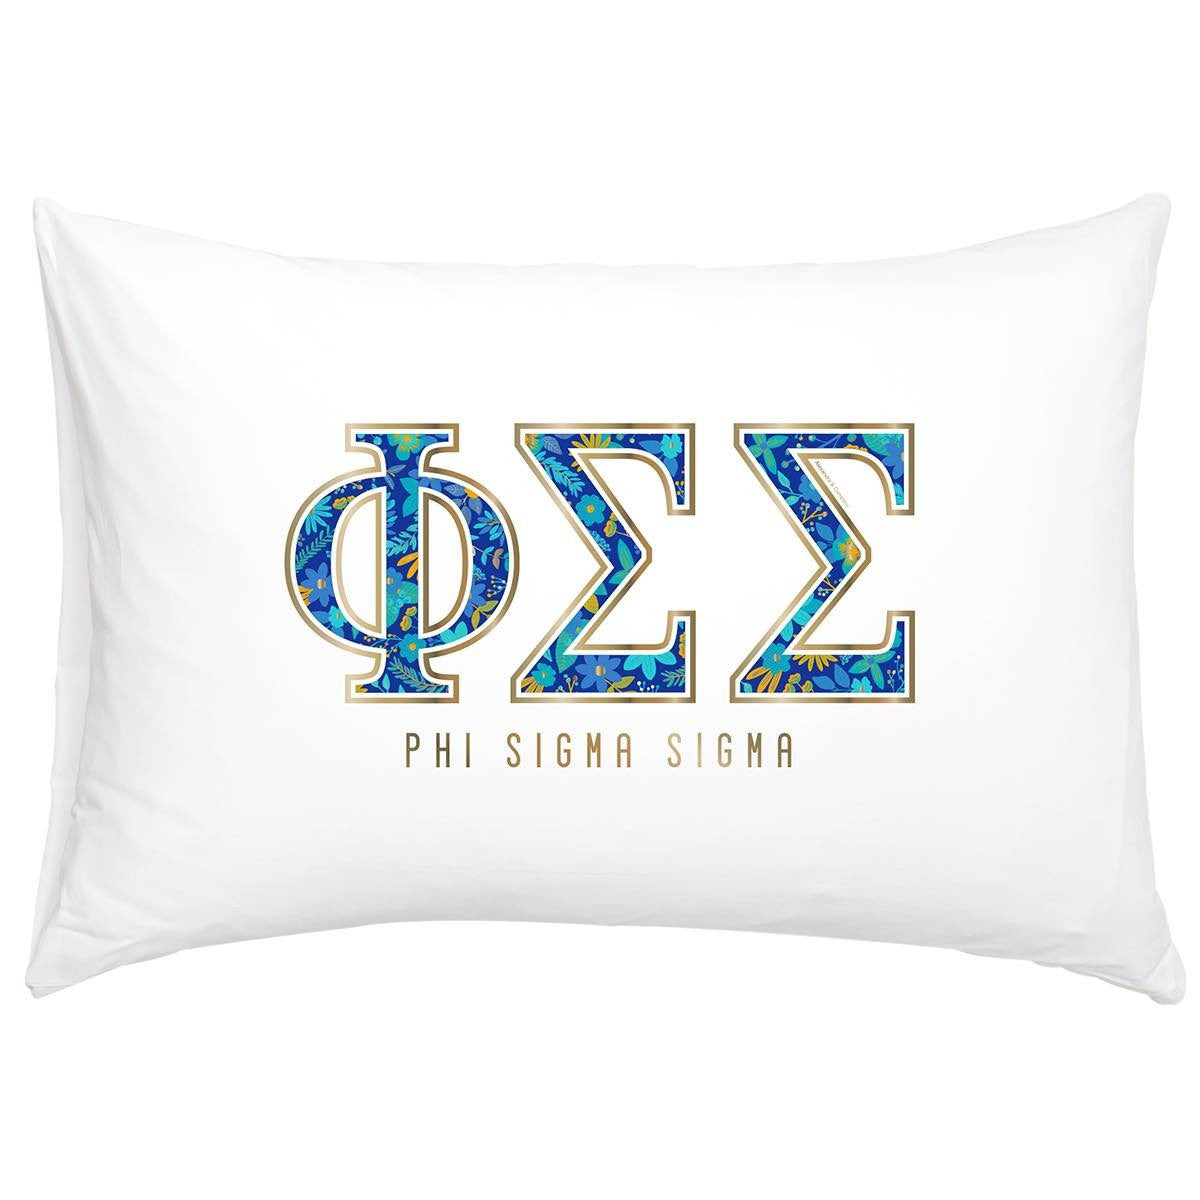 Phi Sigma Sigma Pillowcase with gold and floral print.